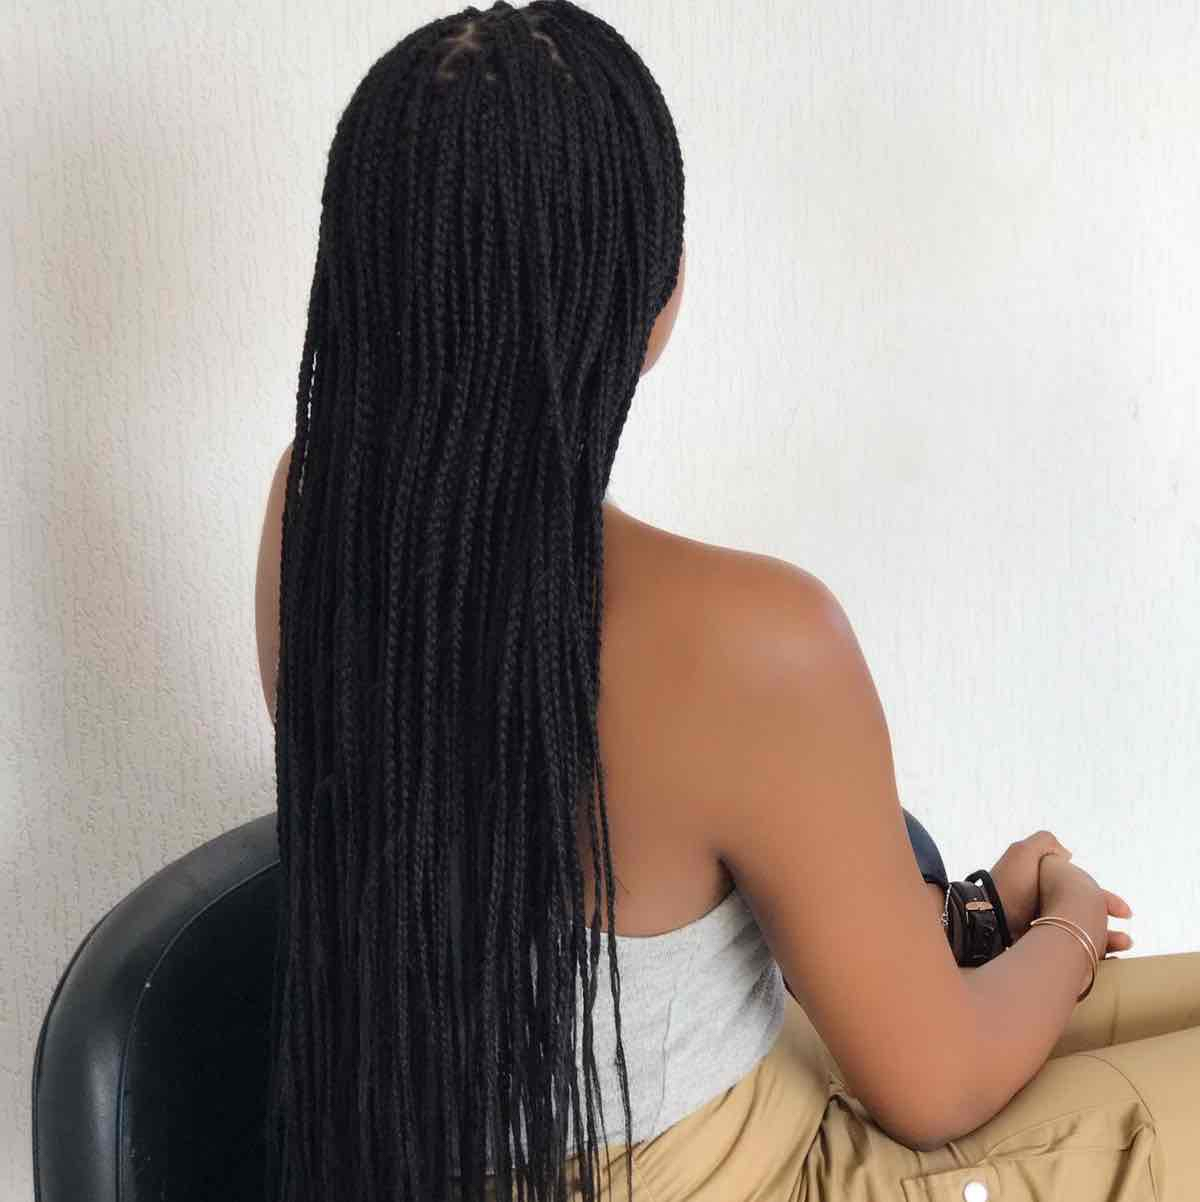 salon de coiffure afro tresse tresses box braids crochet braids vanilles tissages paris 75 77 78 91 92 93 94 95 MBRFXYYF